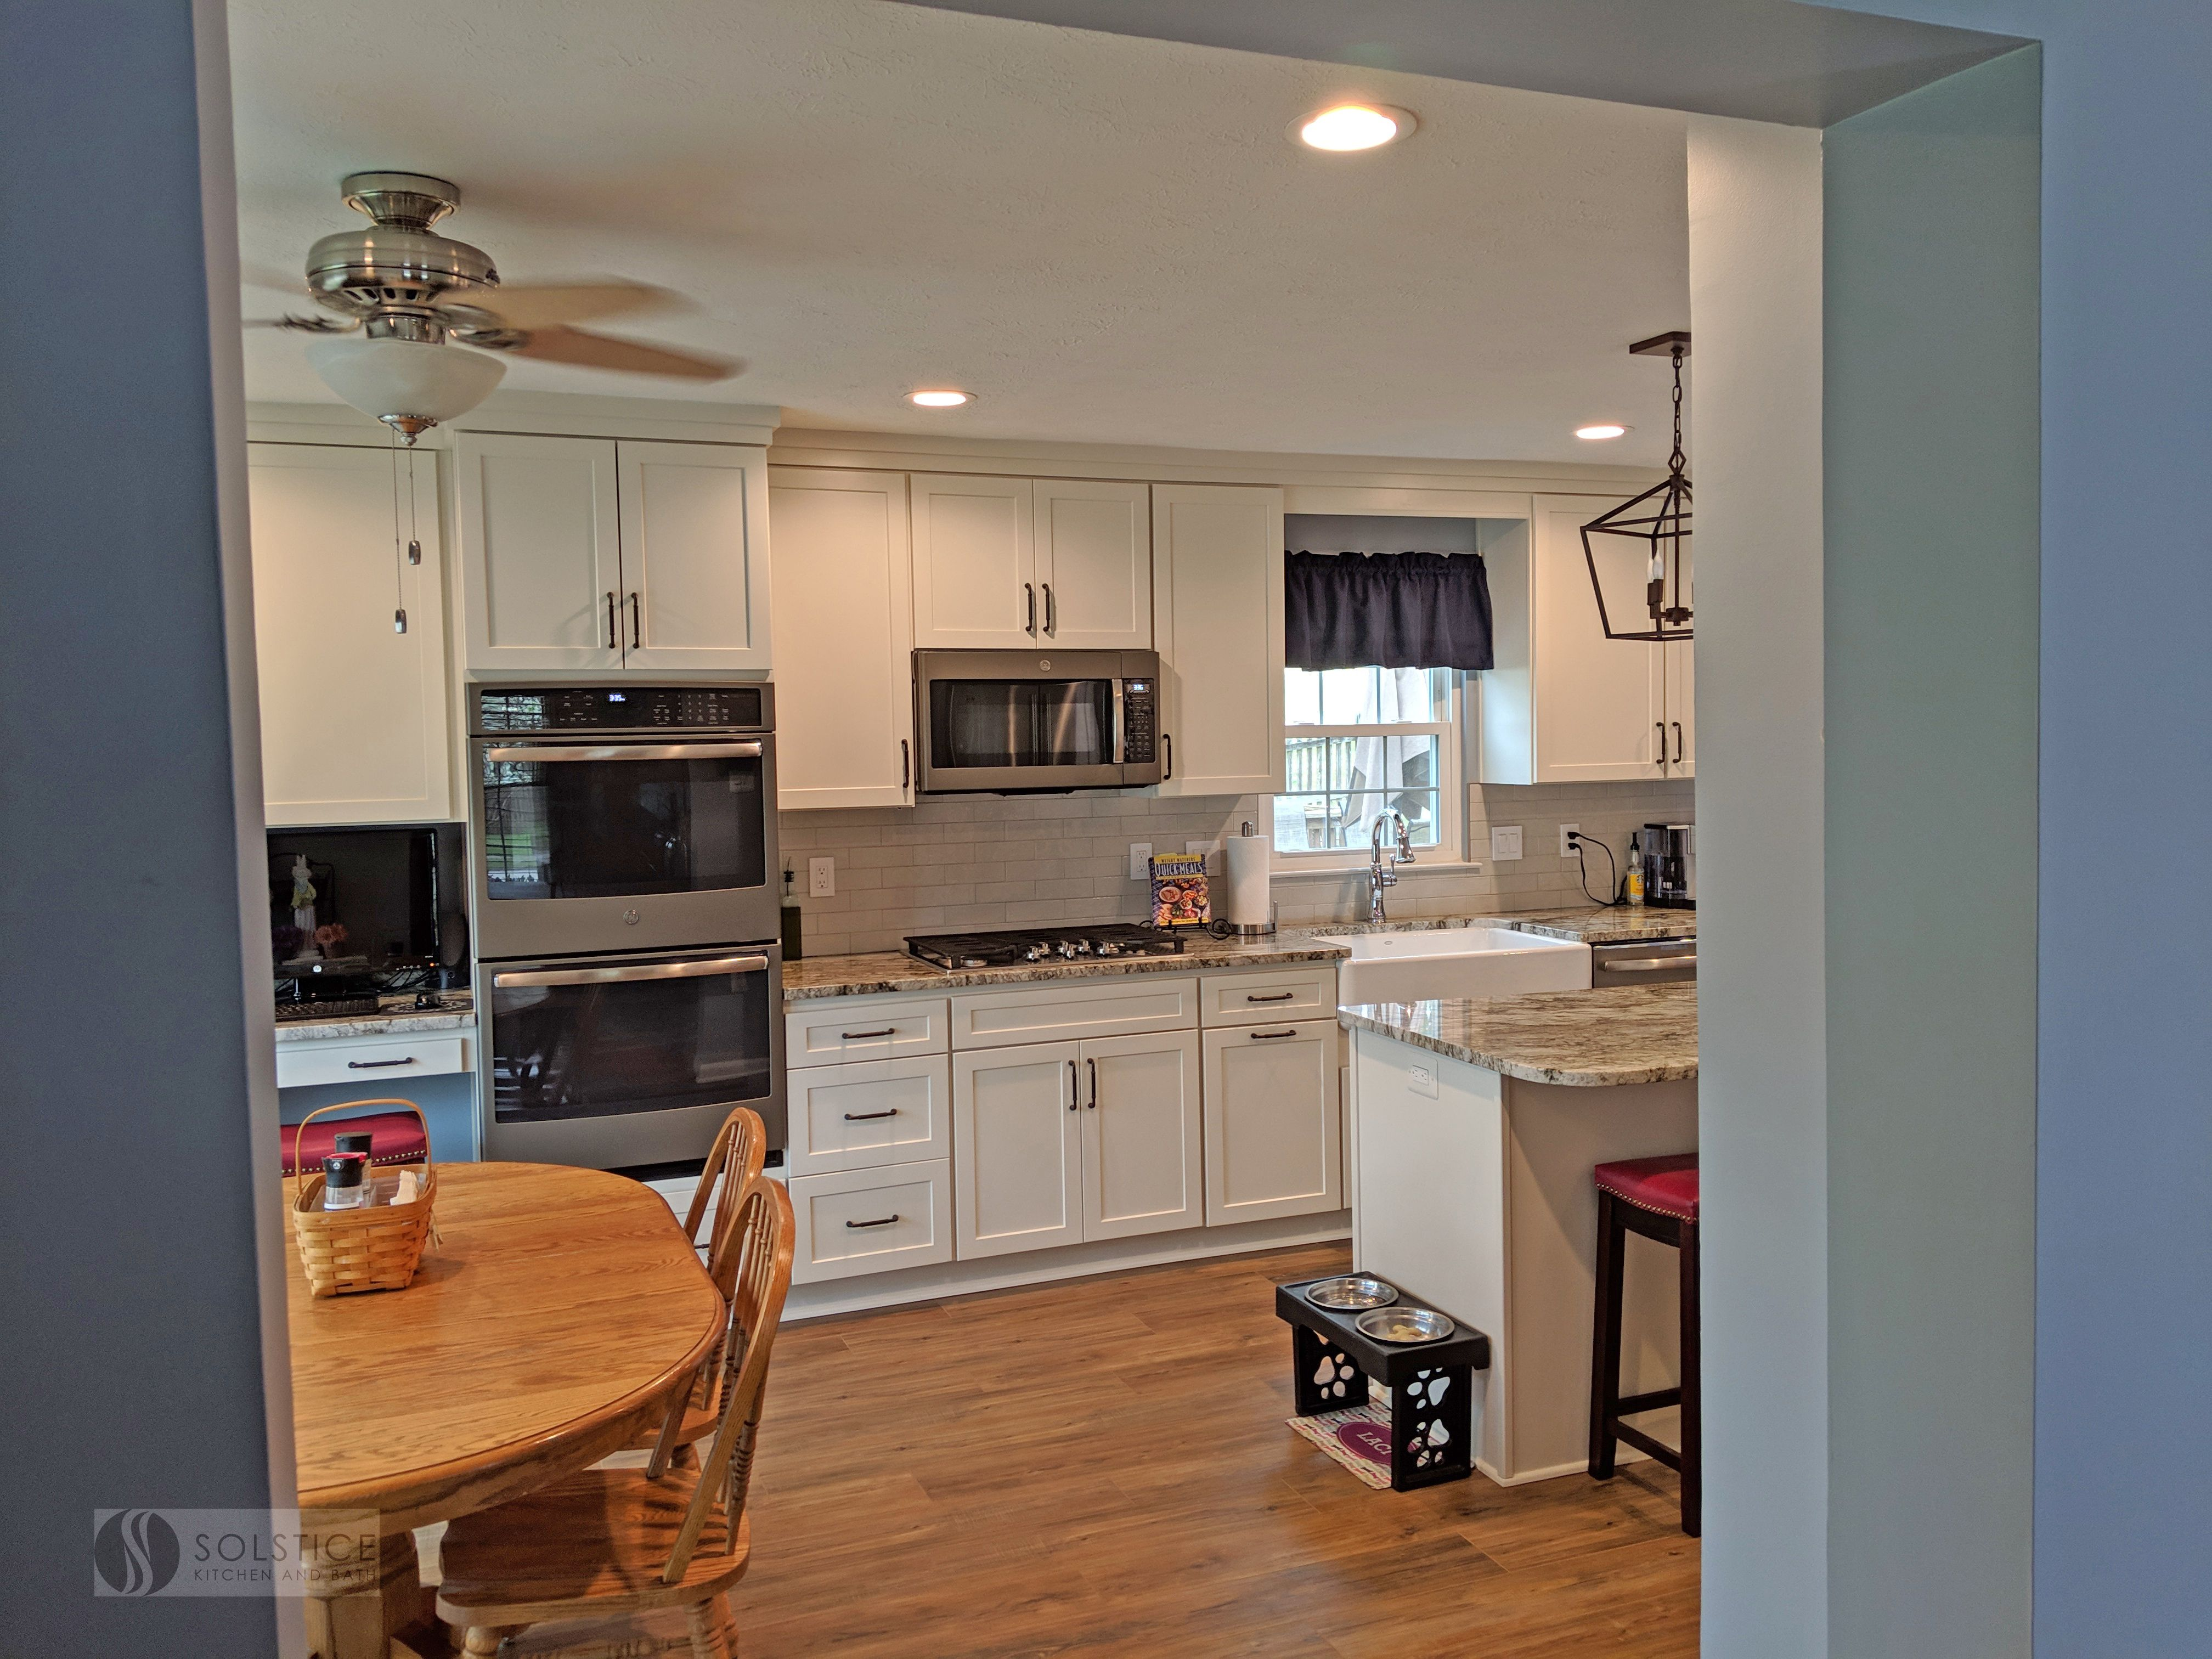 The Solstice Team Updated The Kitchen Design For This Odenton Md